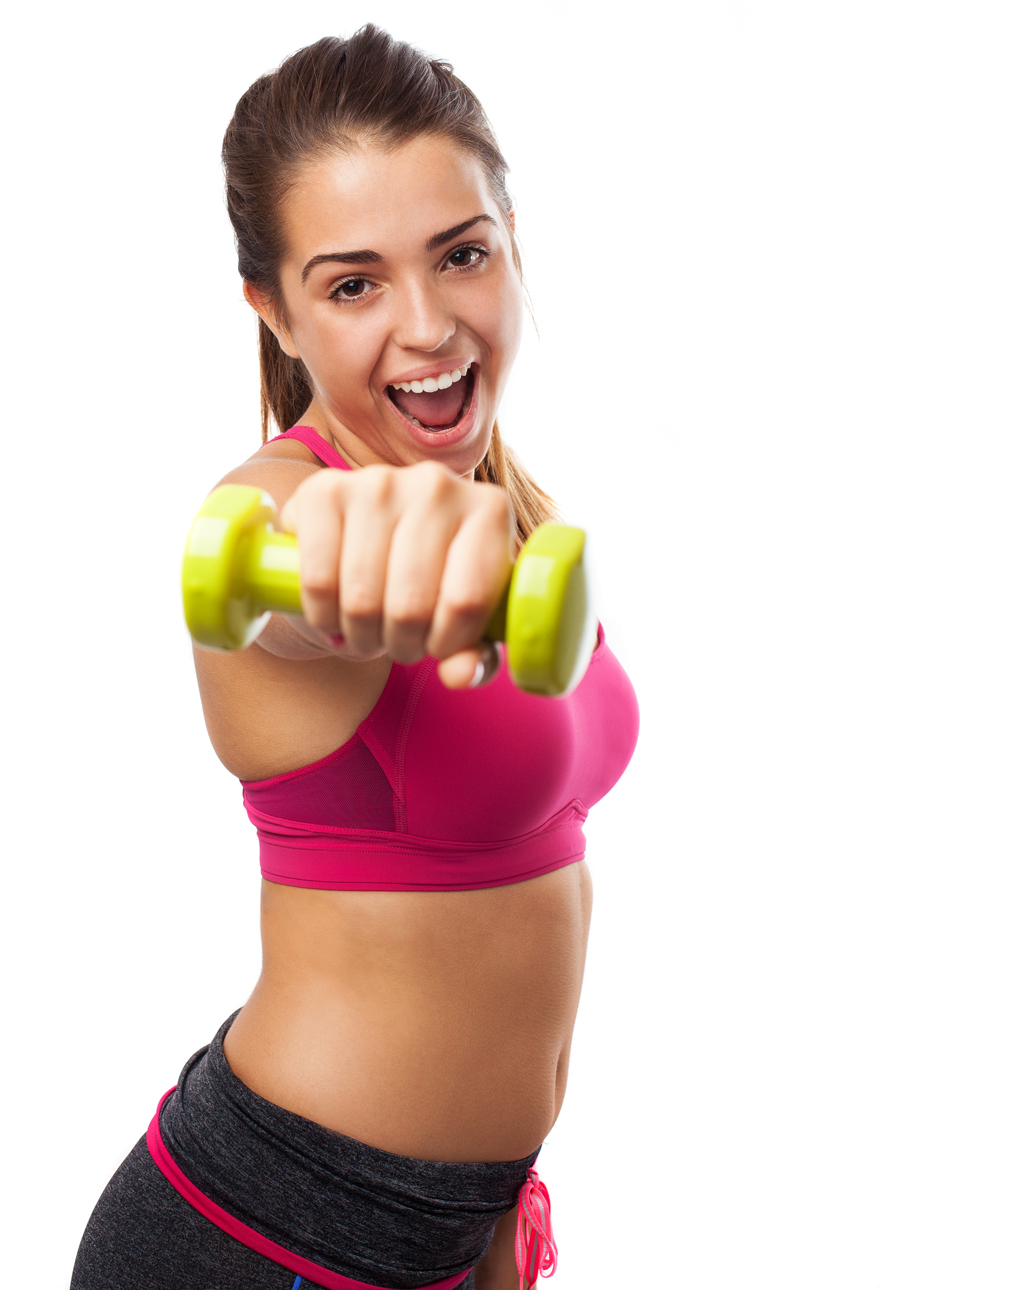 Pretty teenager with weights isolated on a white background